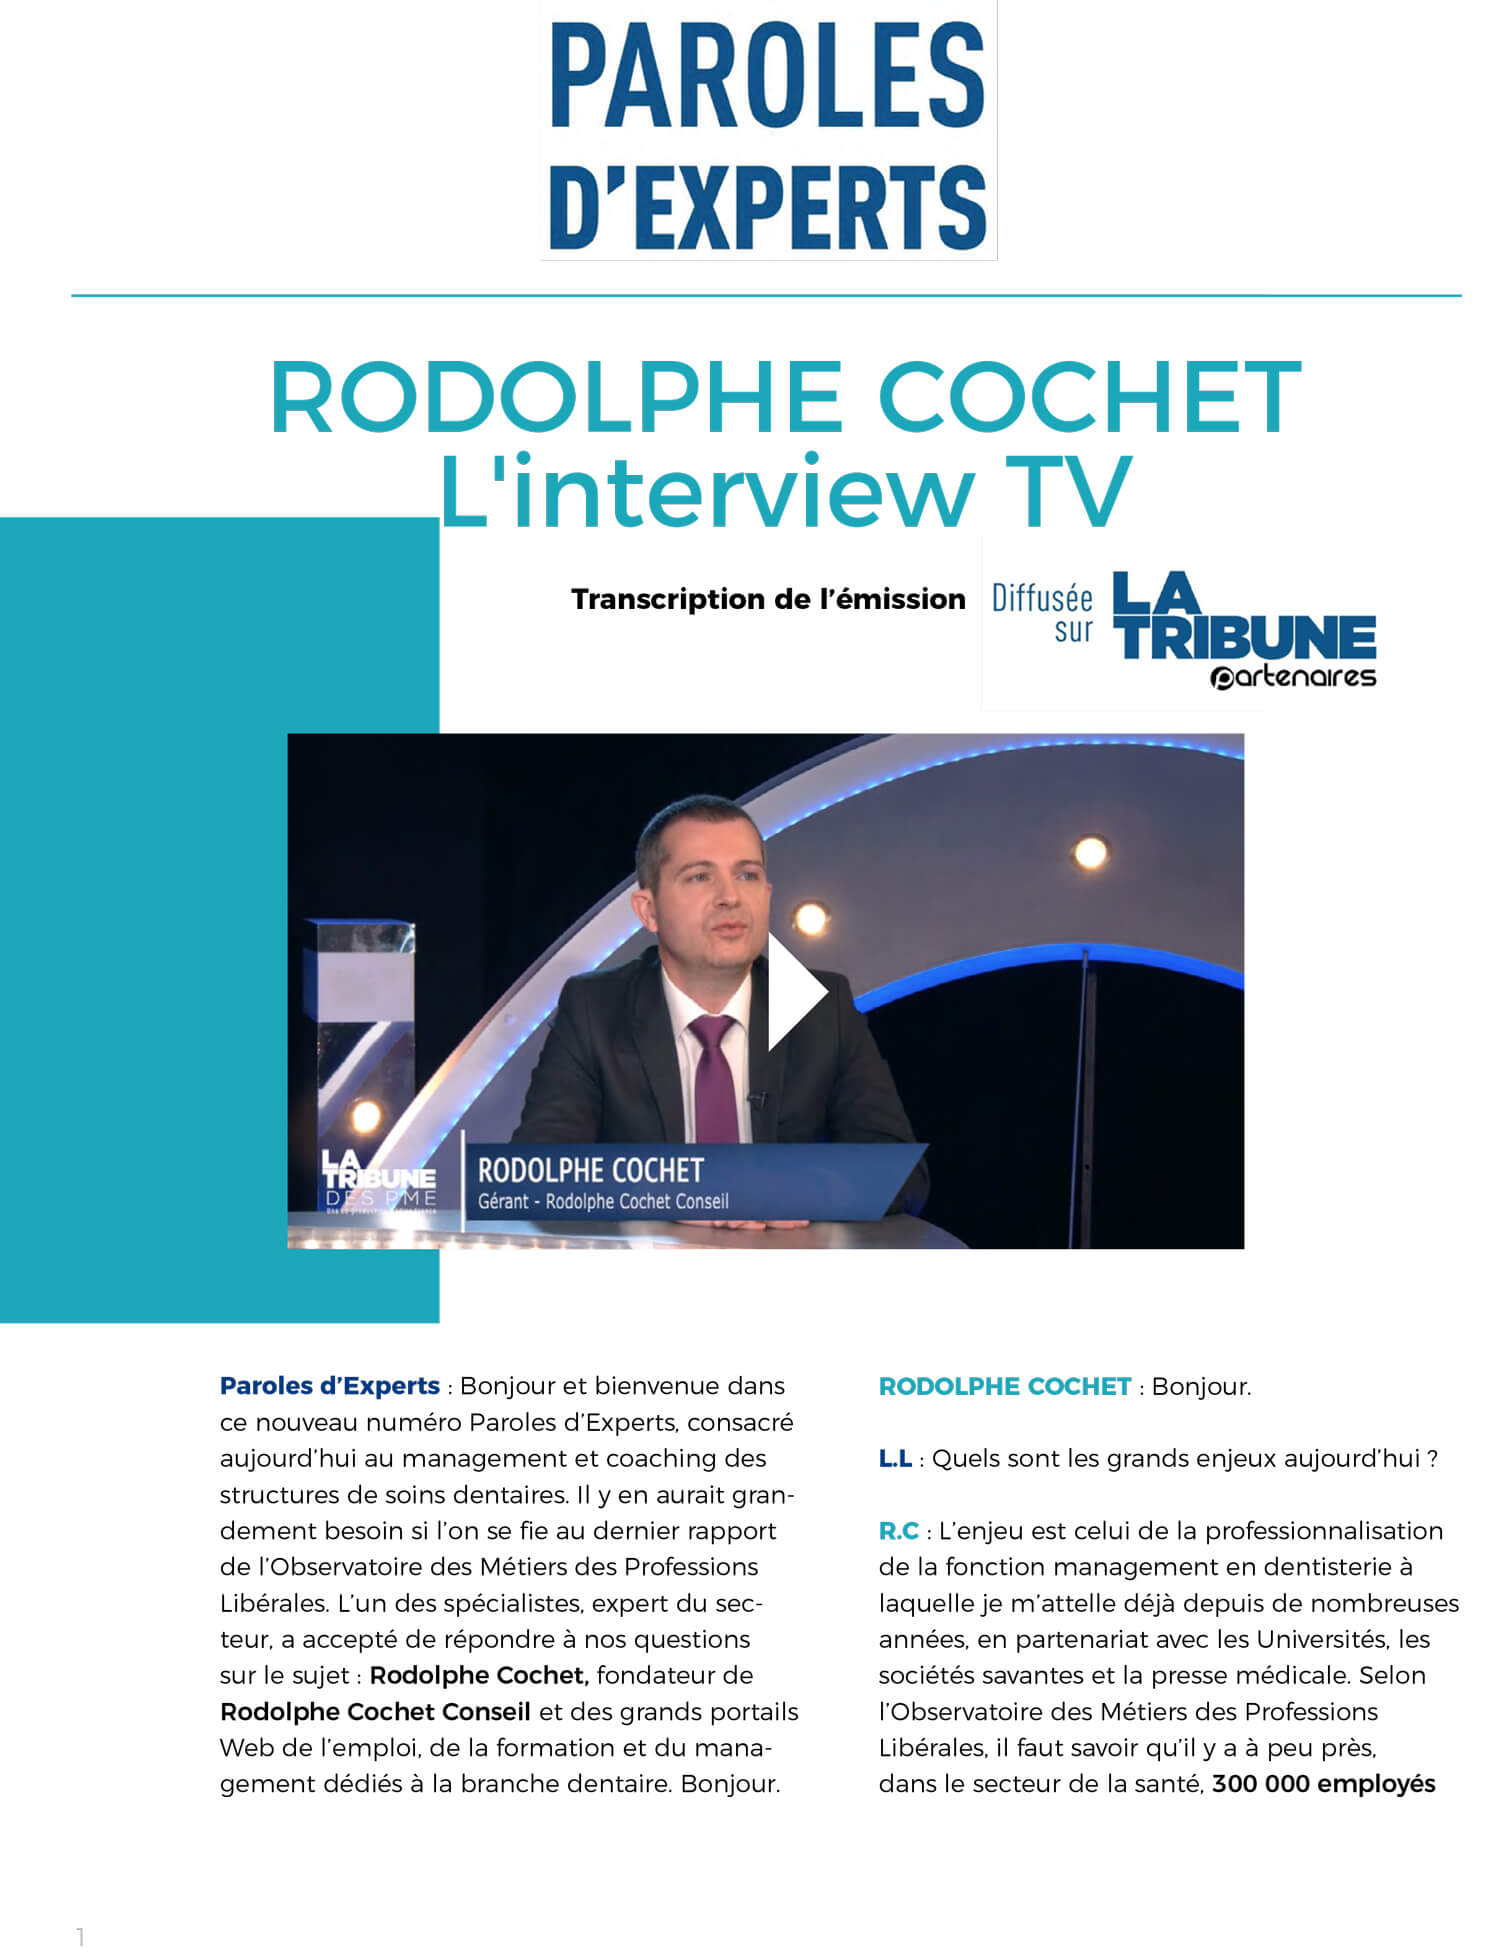 rodolphe-cochet-paroles-experts-gestion-coaching-cabinet-dentaire-interview-tv.jpg